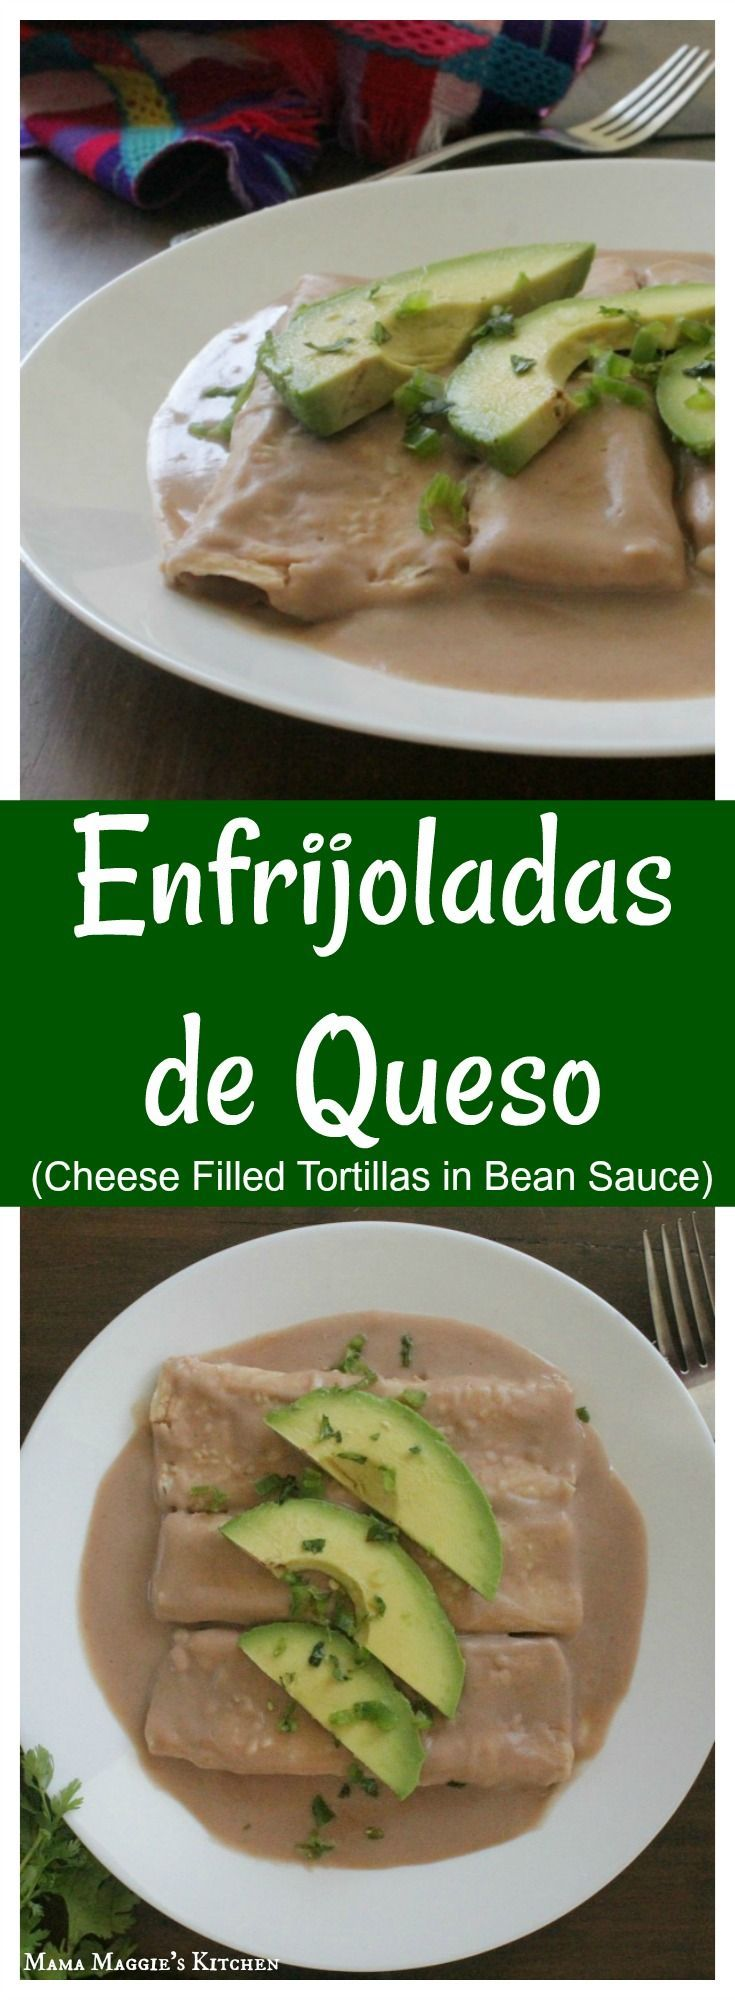 Enfrijoladas de Queso, or Cheese Filled Tortillas dipped in Bean Sauce. This recipe is a yummy Mexican food classic. Cheesy and perfect for Meatless Mondays. Enjoy! By Mama Maggie's Kitchen